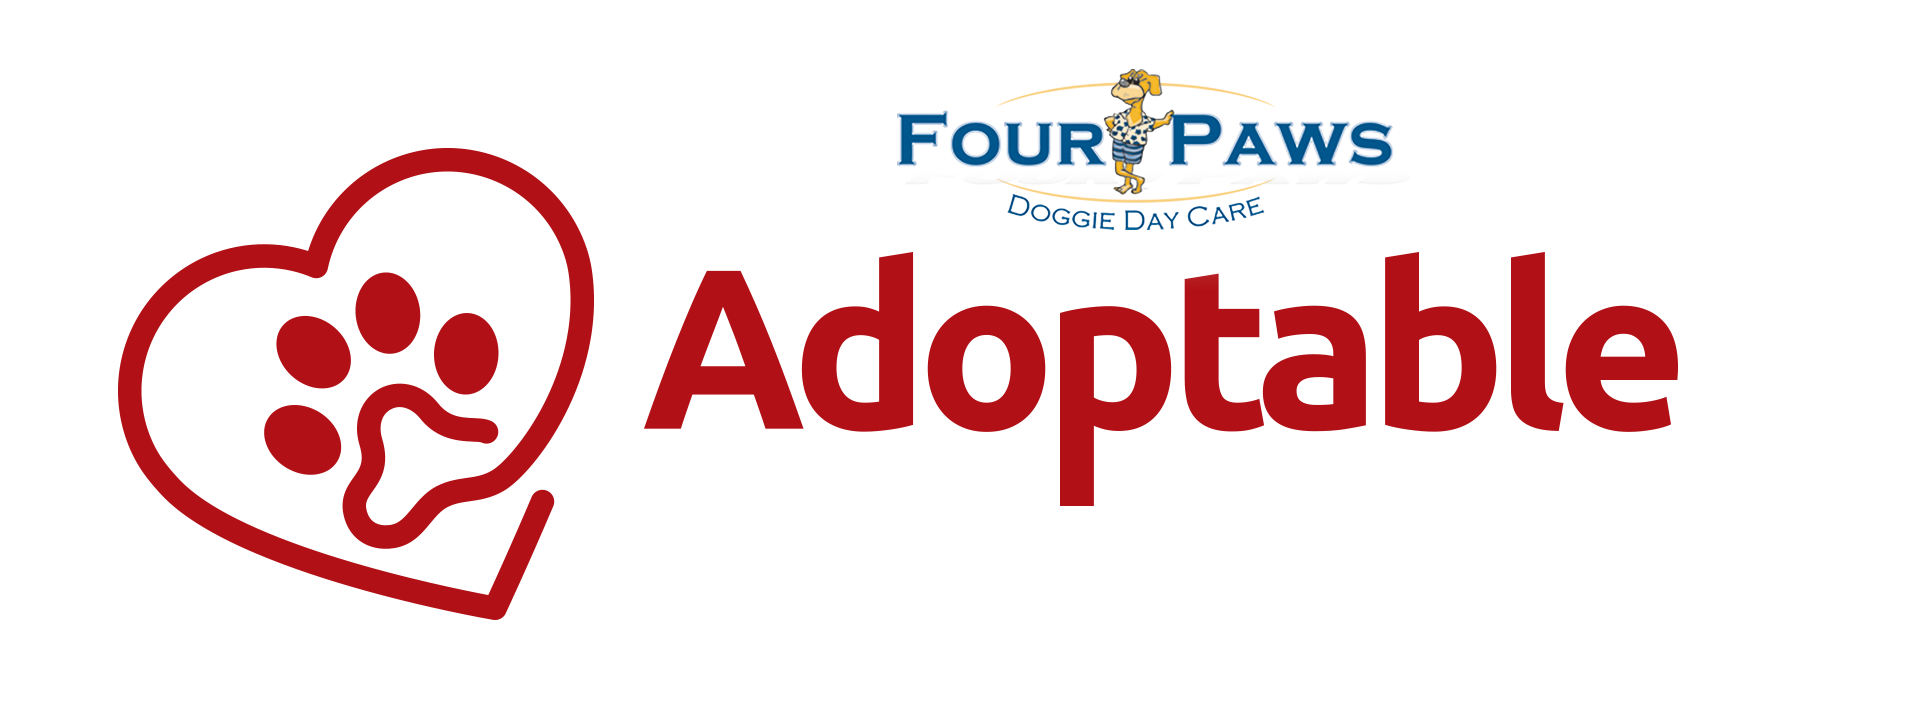 Four Paws Doggie Daycare Adoptable Pet of the Week